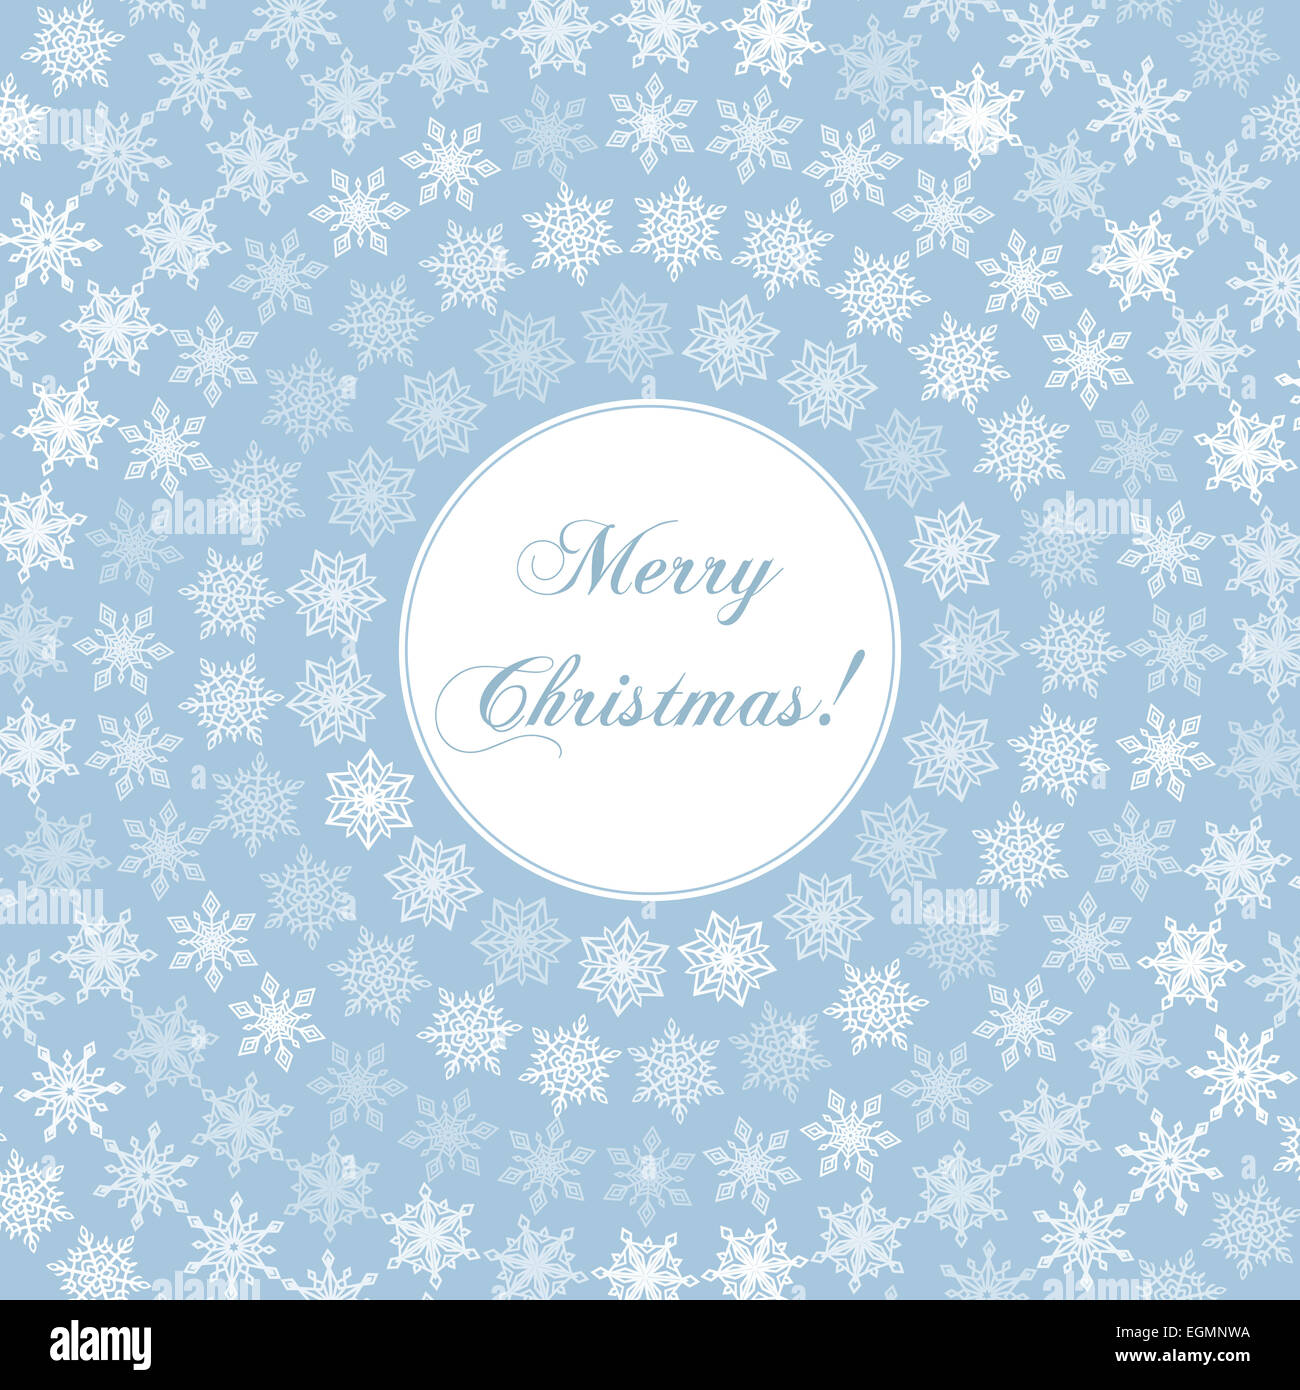 Delicate Merry Christmas Greeting Card With Words On Round And Stock